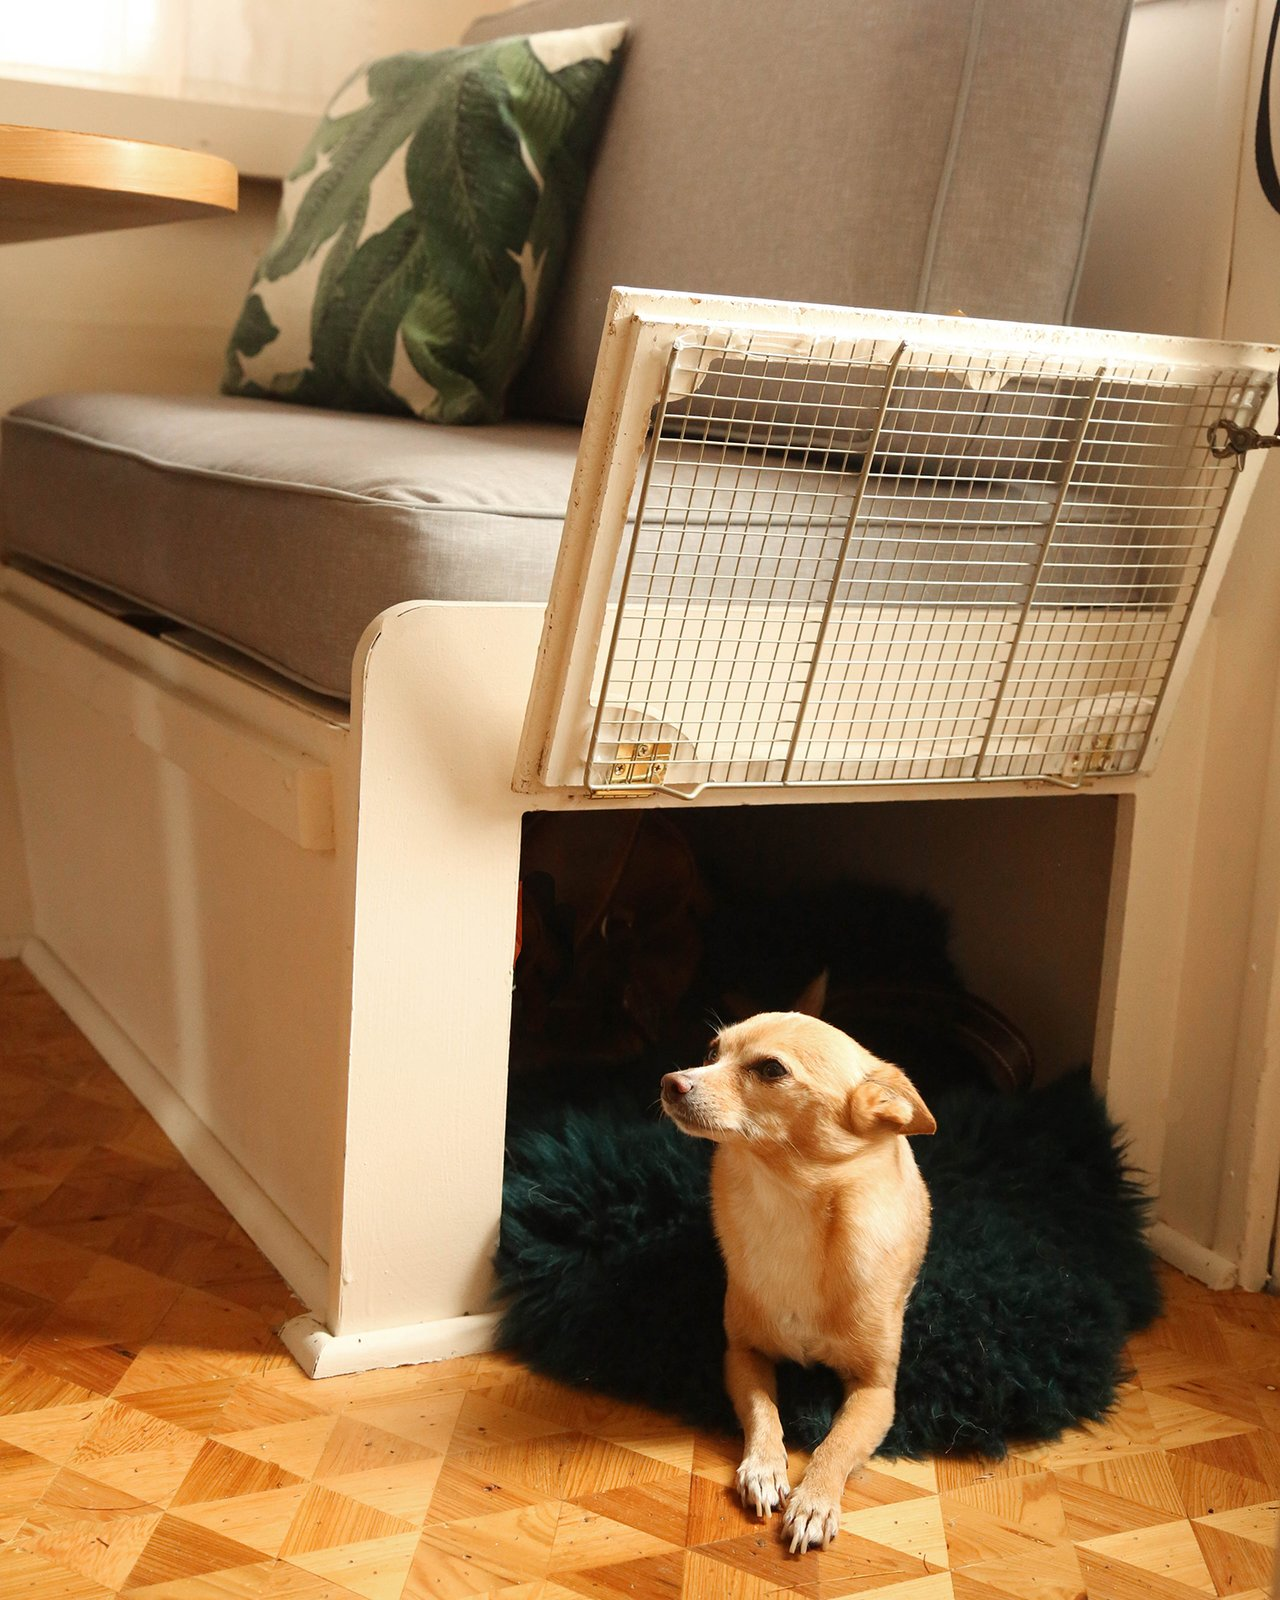 The seat base storage was converted to a fun kennel for the couple's dog, Fox.